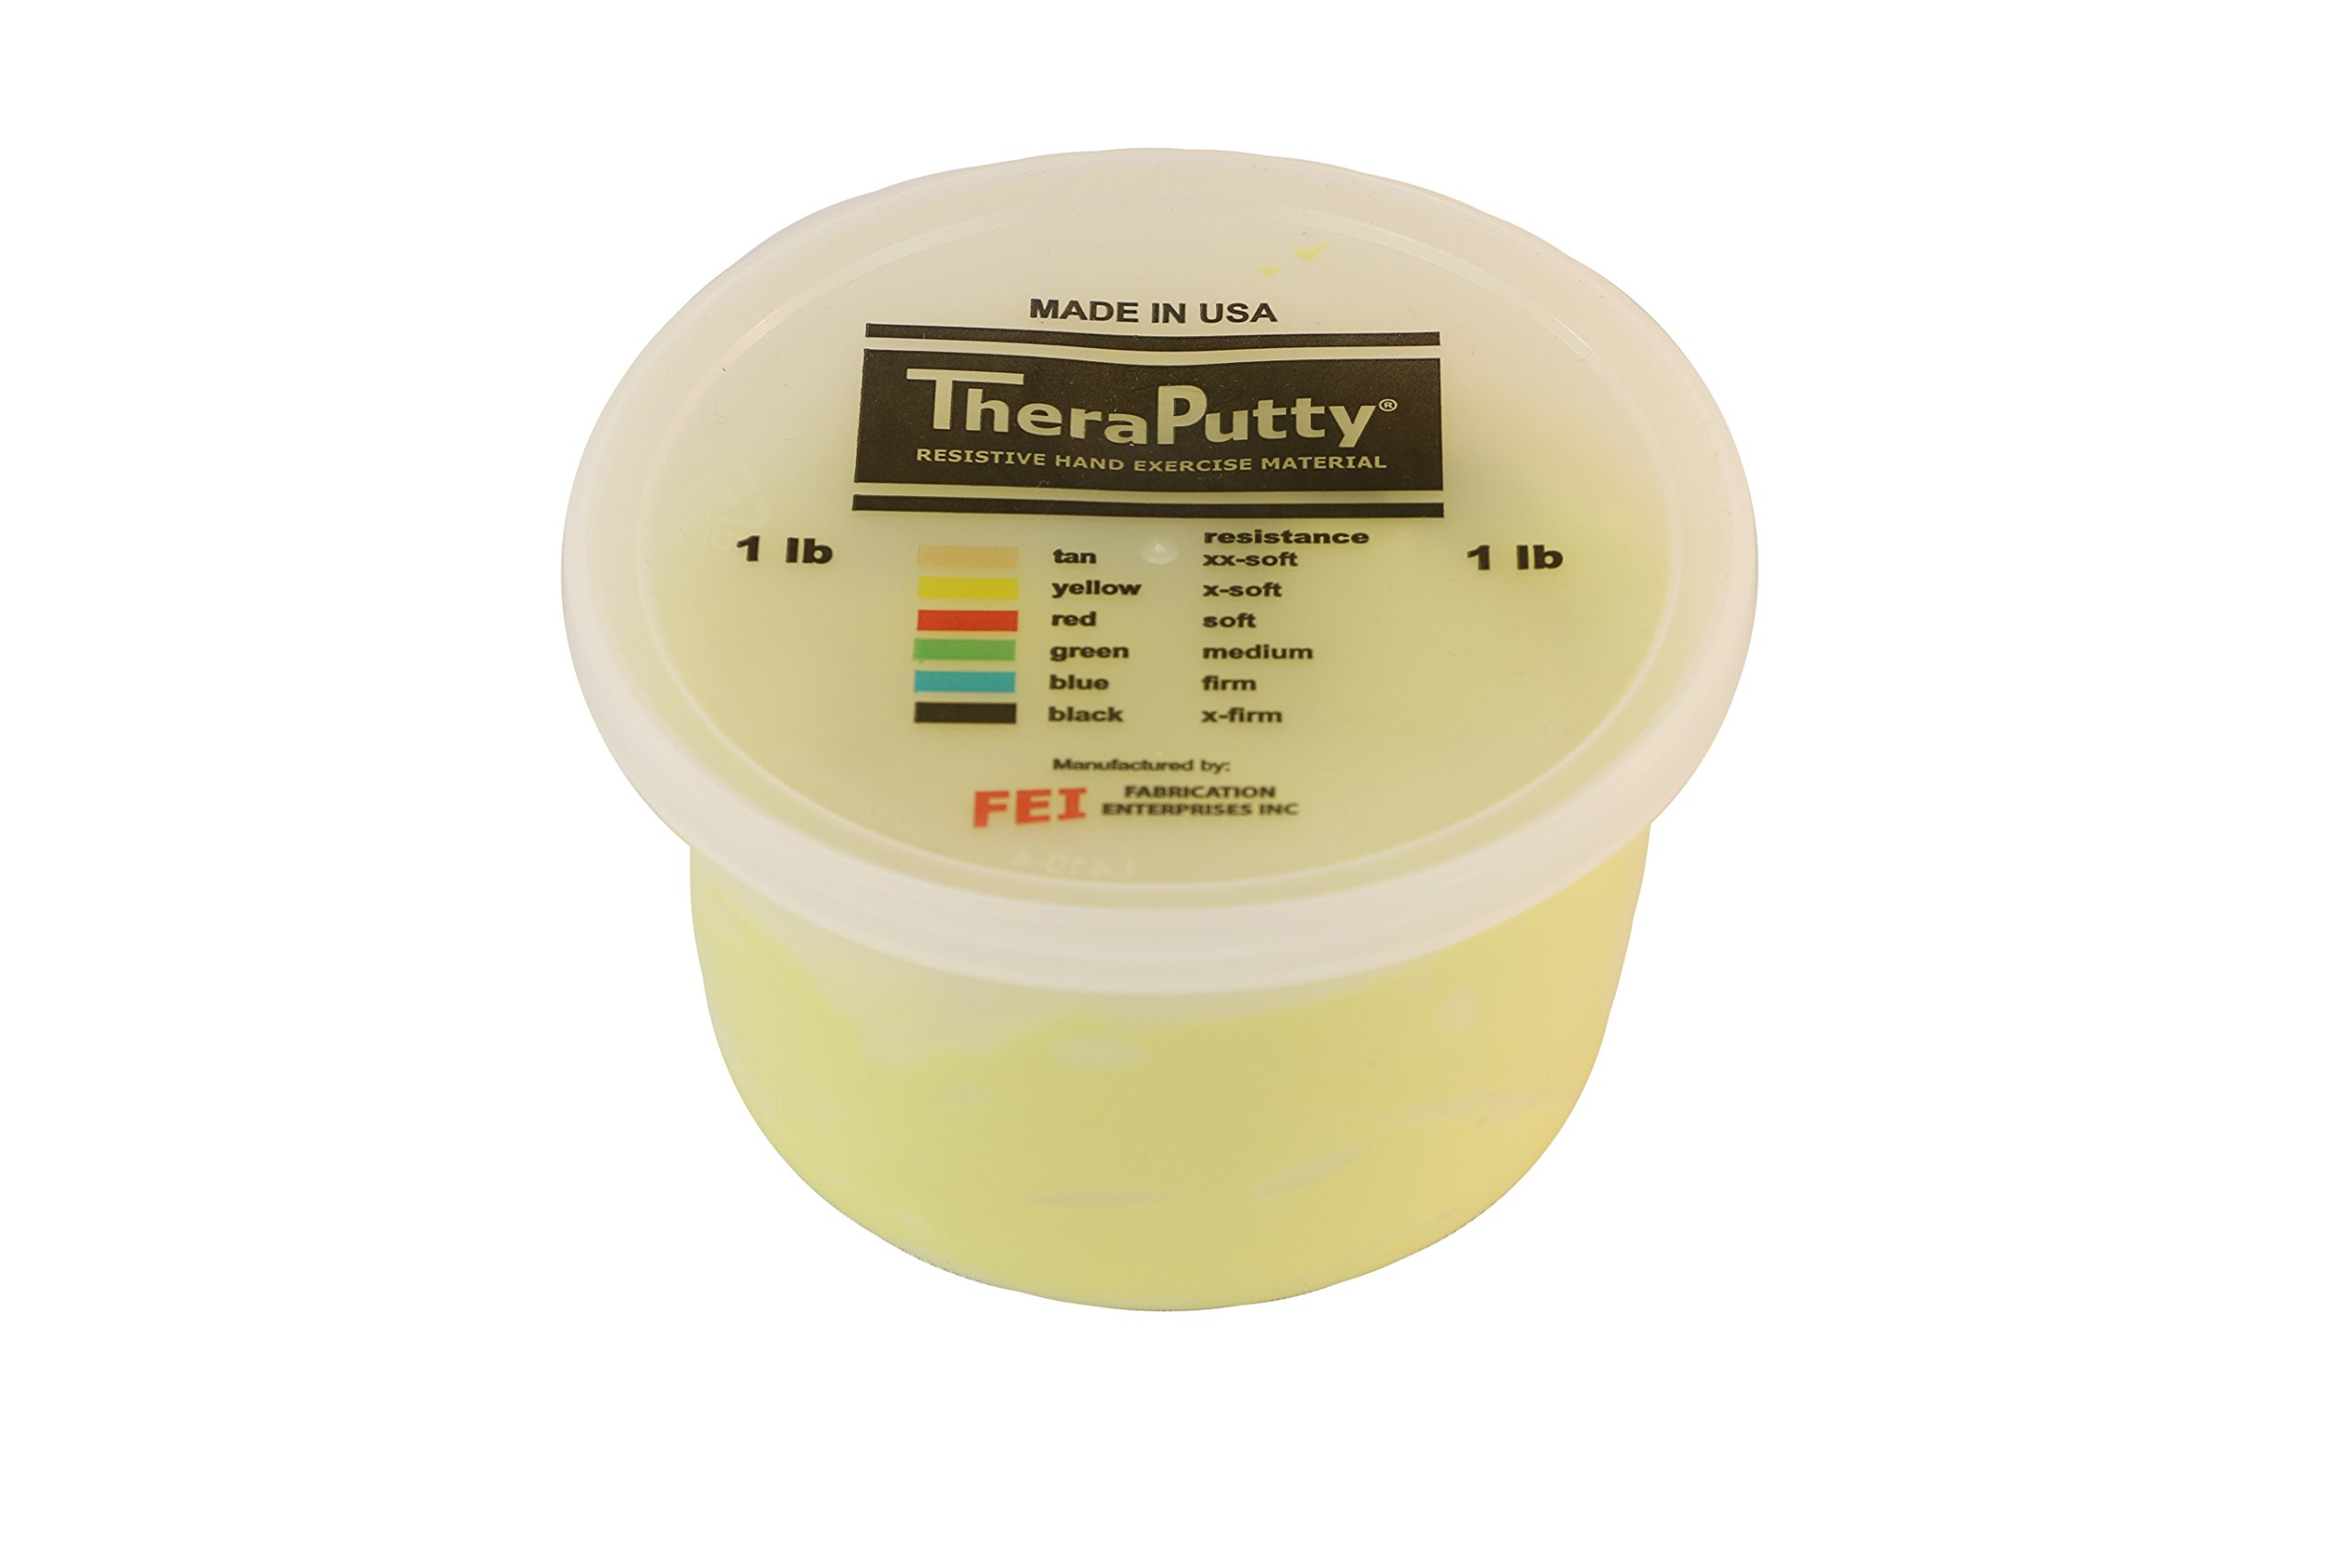 CanDo TheraPutty Plus Anti-microbial, Yellow: X-Soft, 1 lb